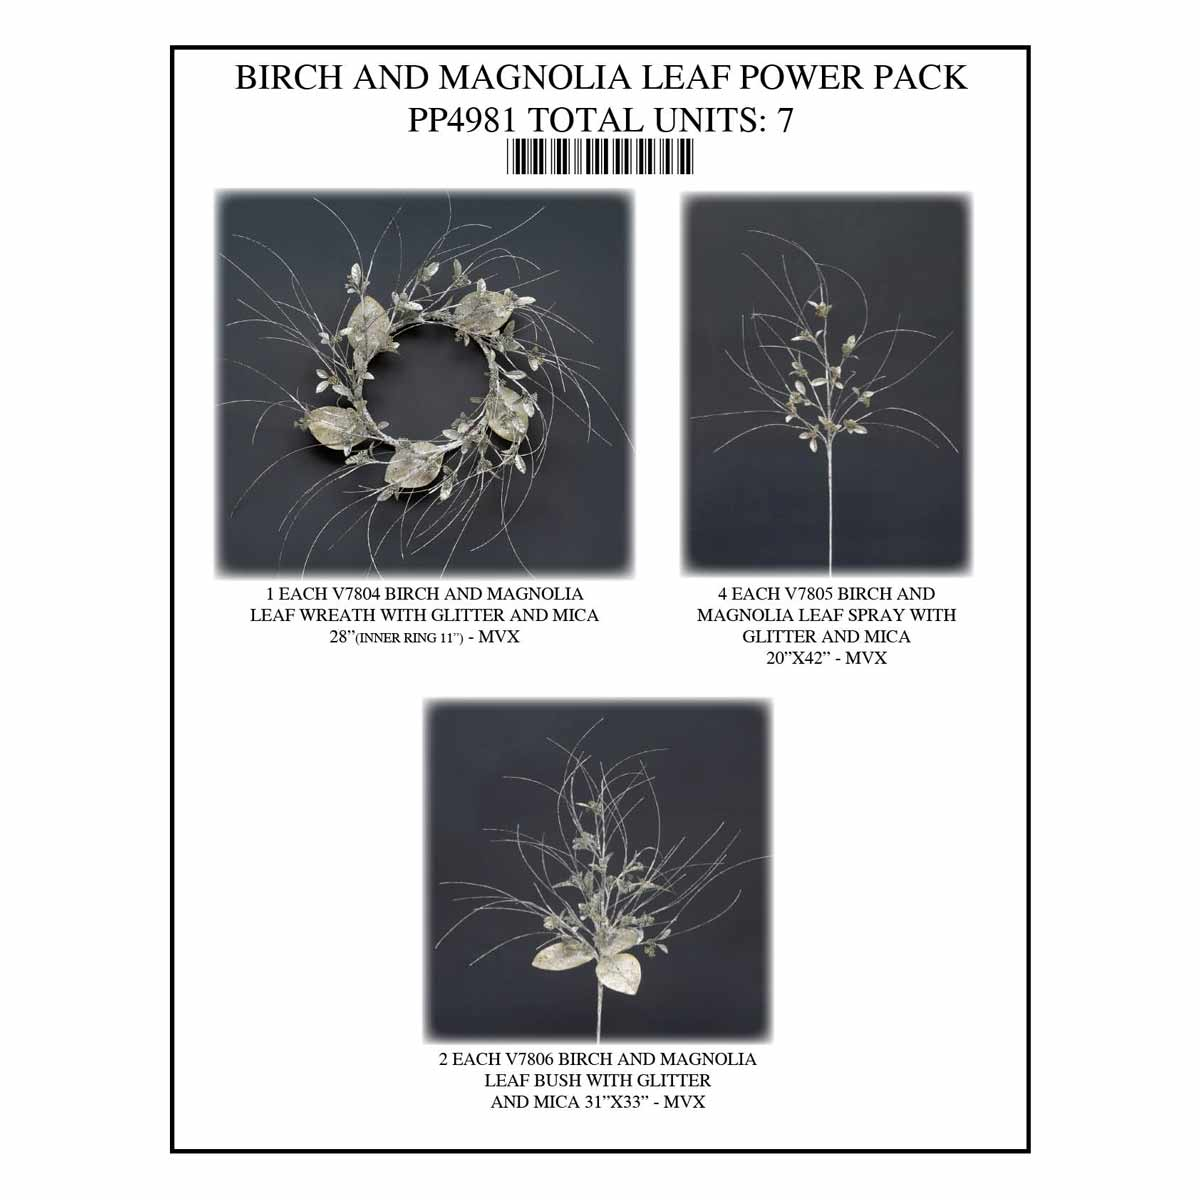 BIRCH MAGNOLIA POWER PACK 7 UNITS PP4981